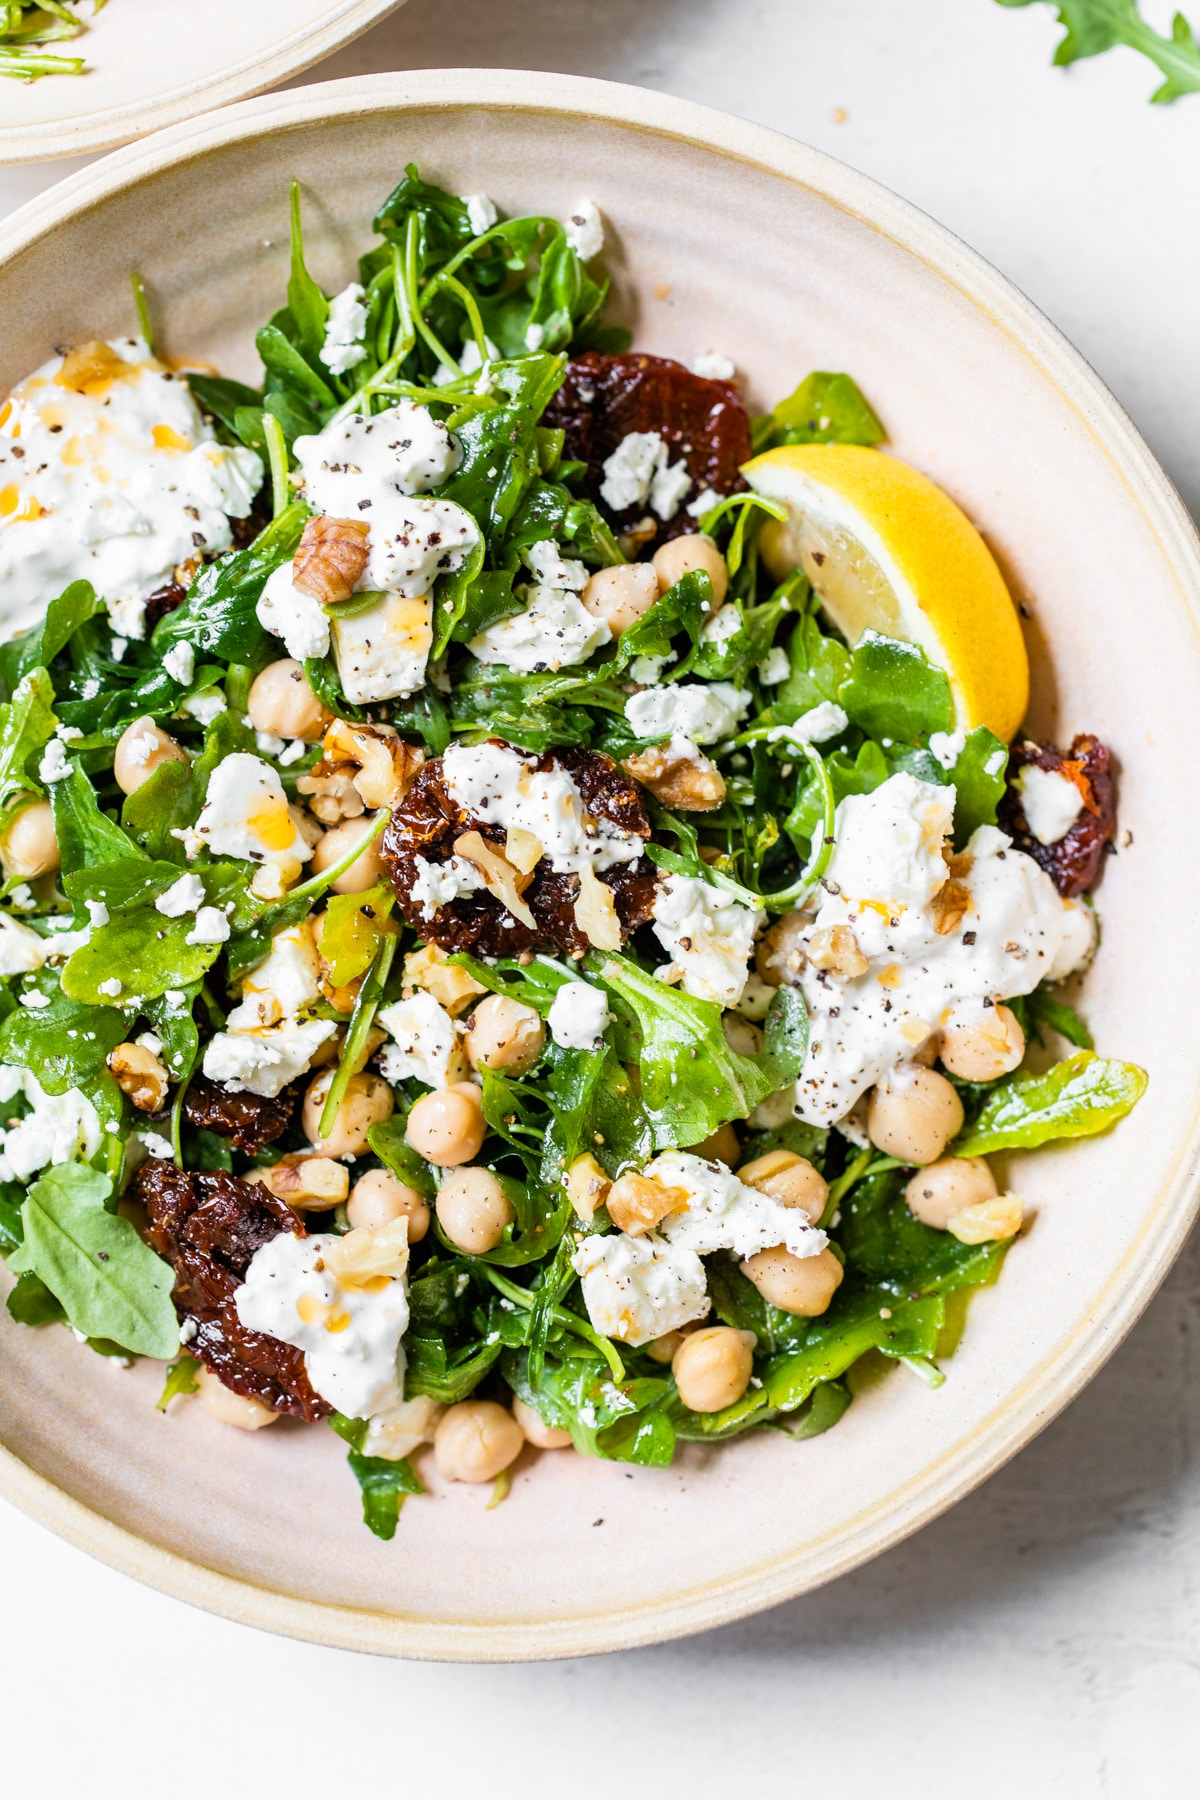 salad with chickpeas and feta